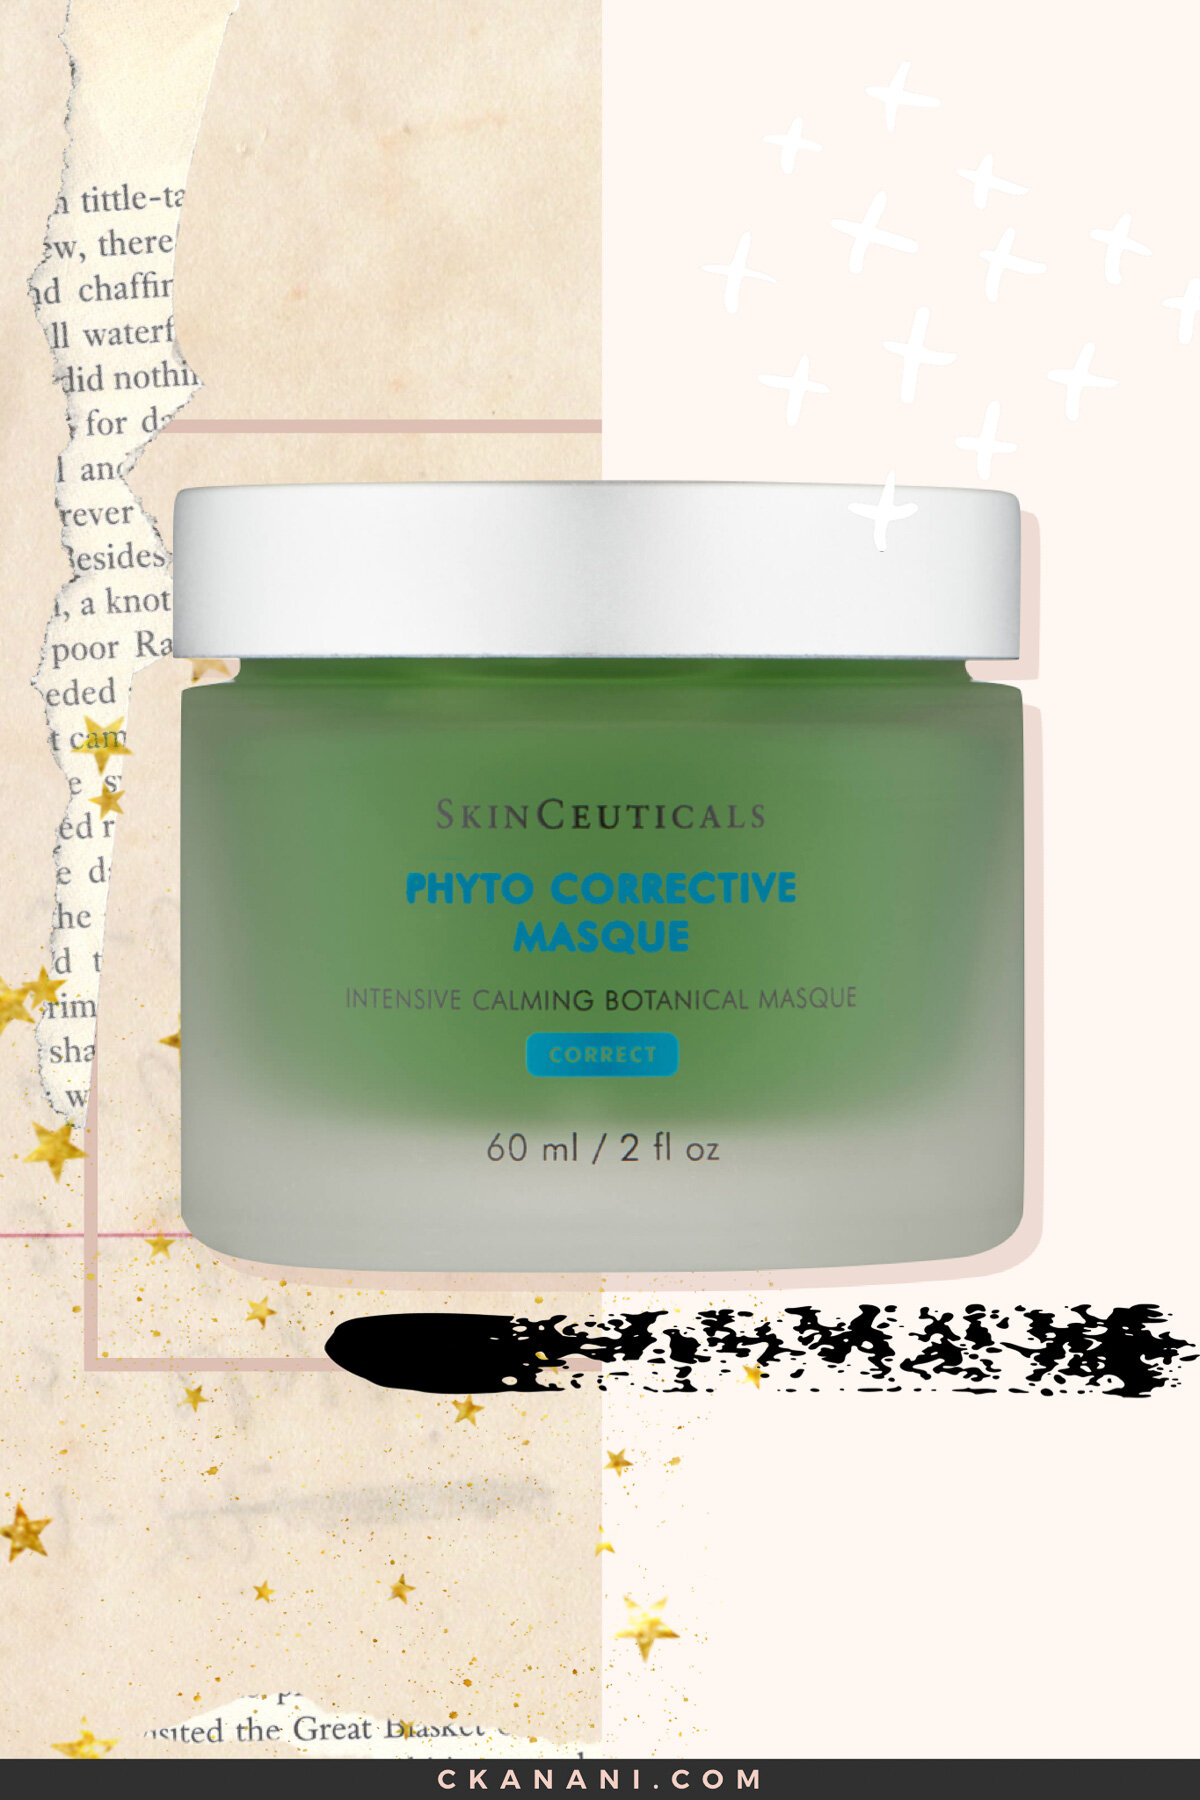 SkinCeuticals Phyto Corrective Masque Face Mask: The Best Face Masks